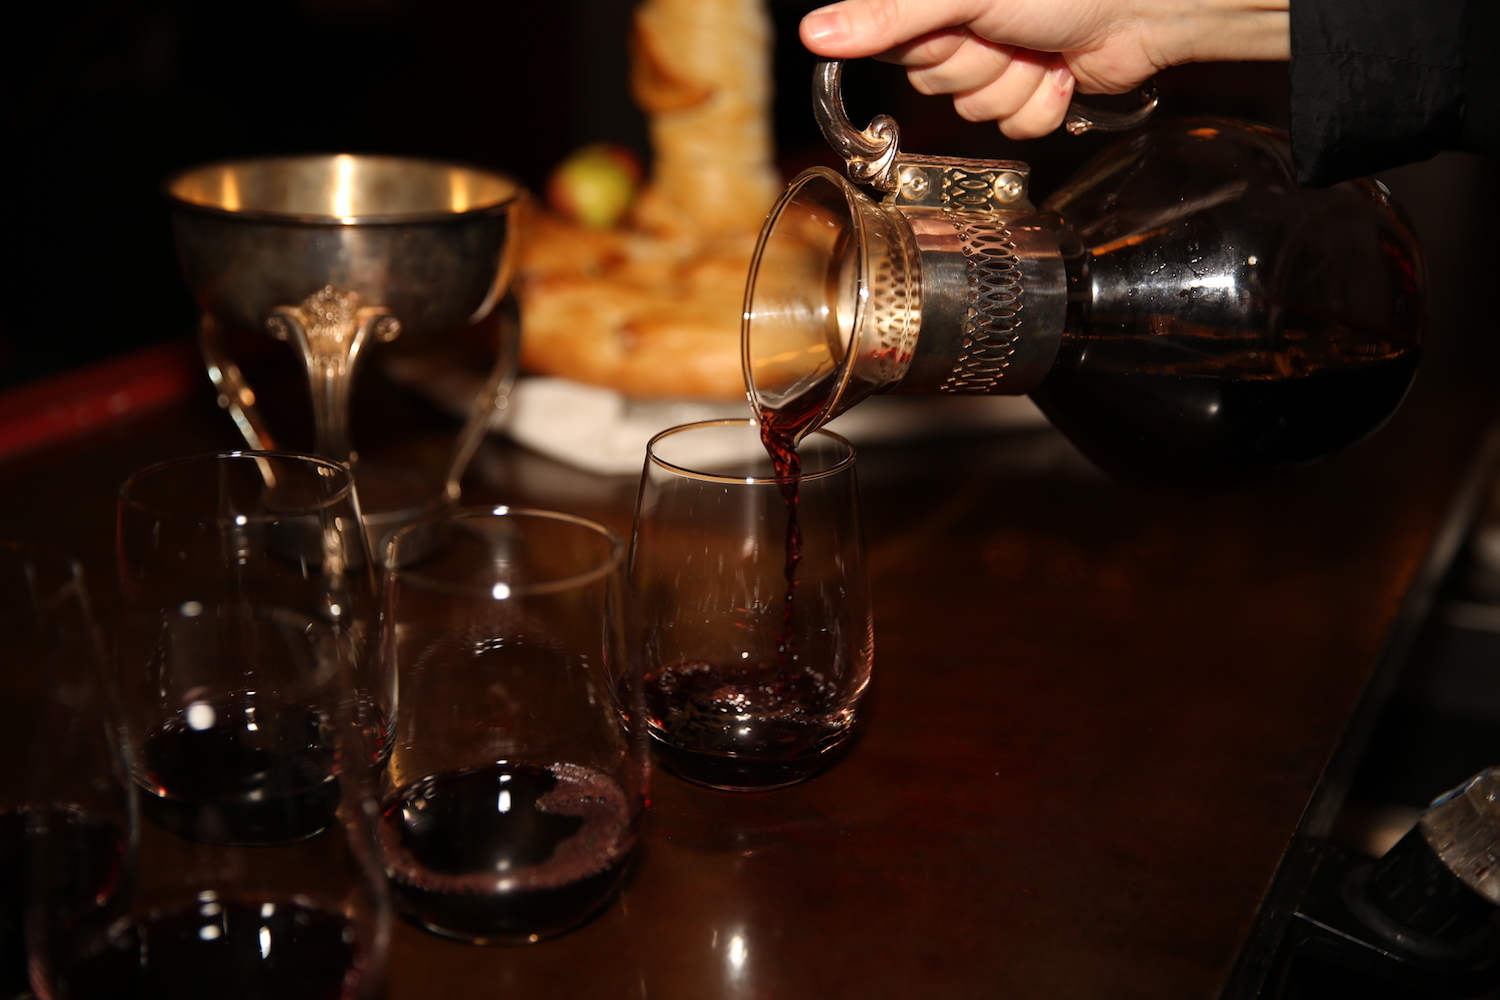 Pouring red wine from a vintage decanter into stemless wine glasses.JPG